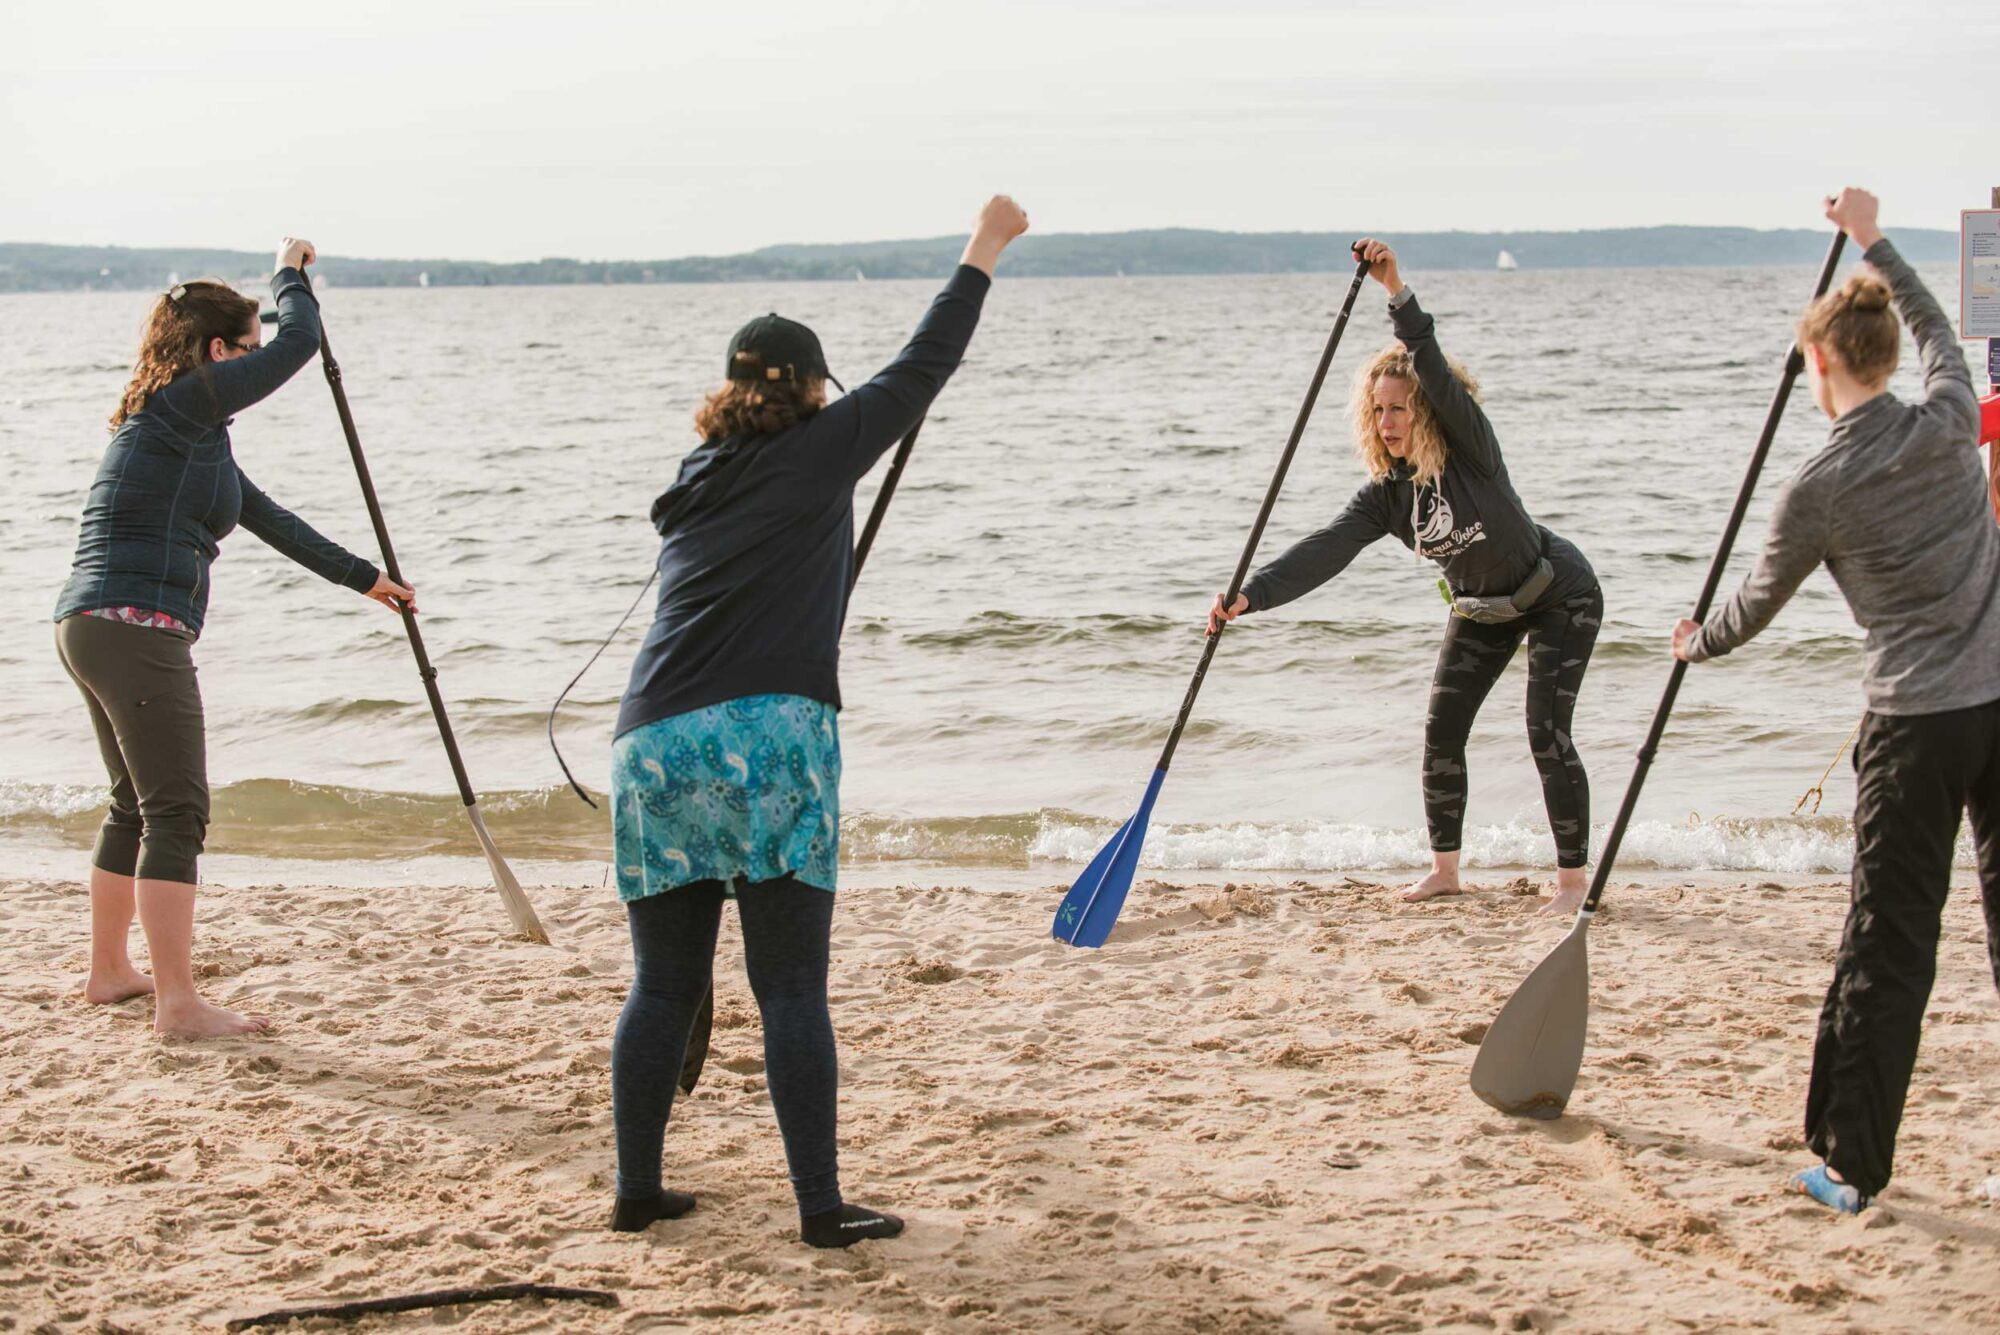 Acqua Dolce Paddle Holli and students practicing paddling on shore during SUP lesson